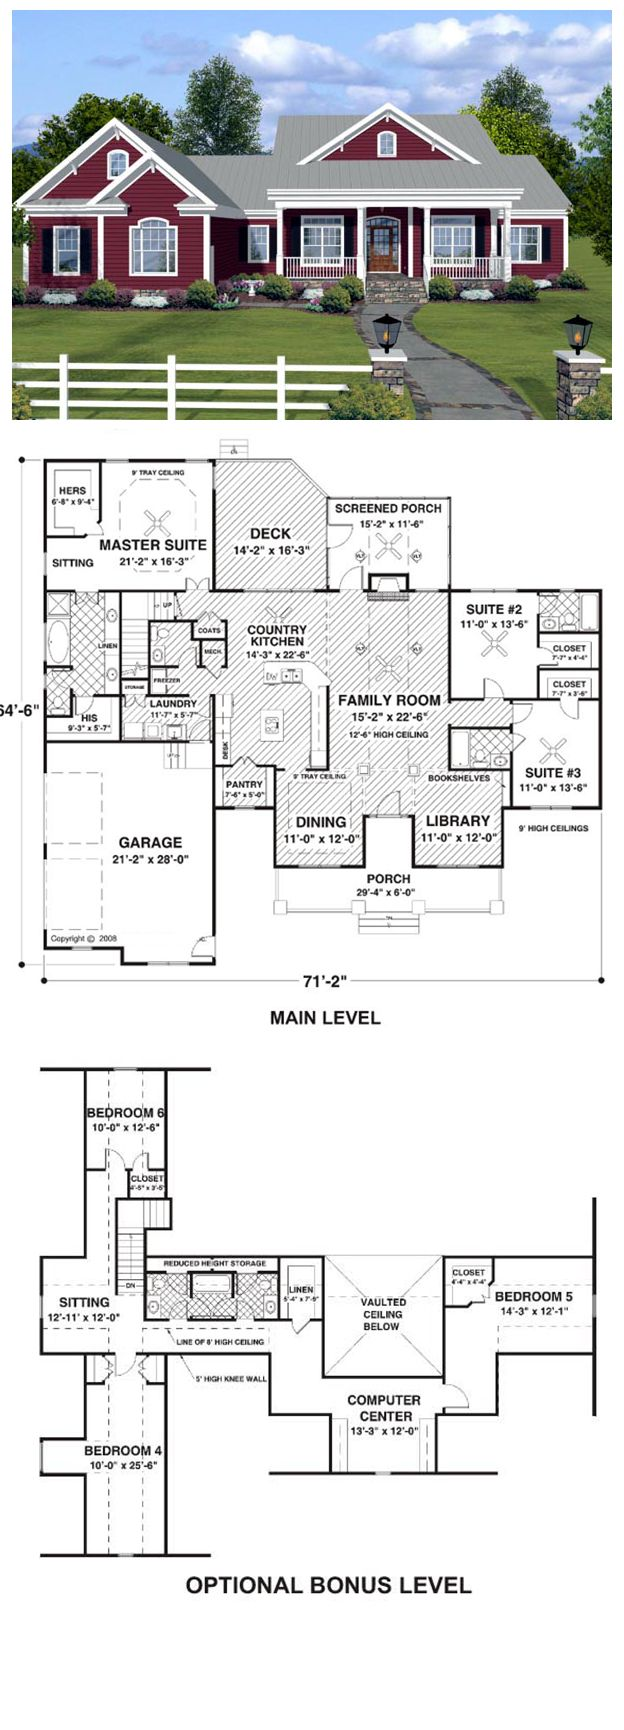 House Plan 74834 | Total living area: 2294 sq ft